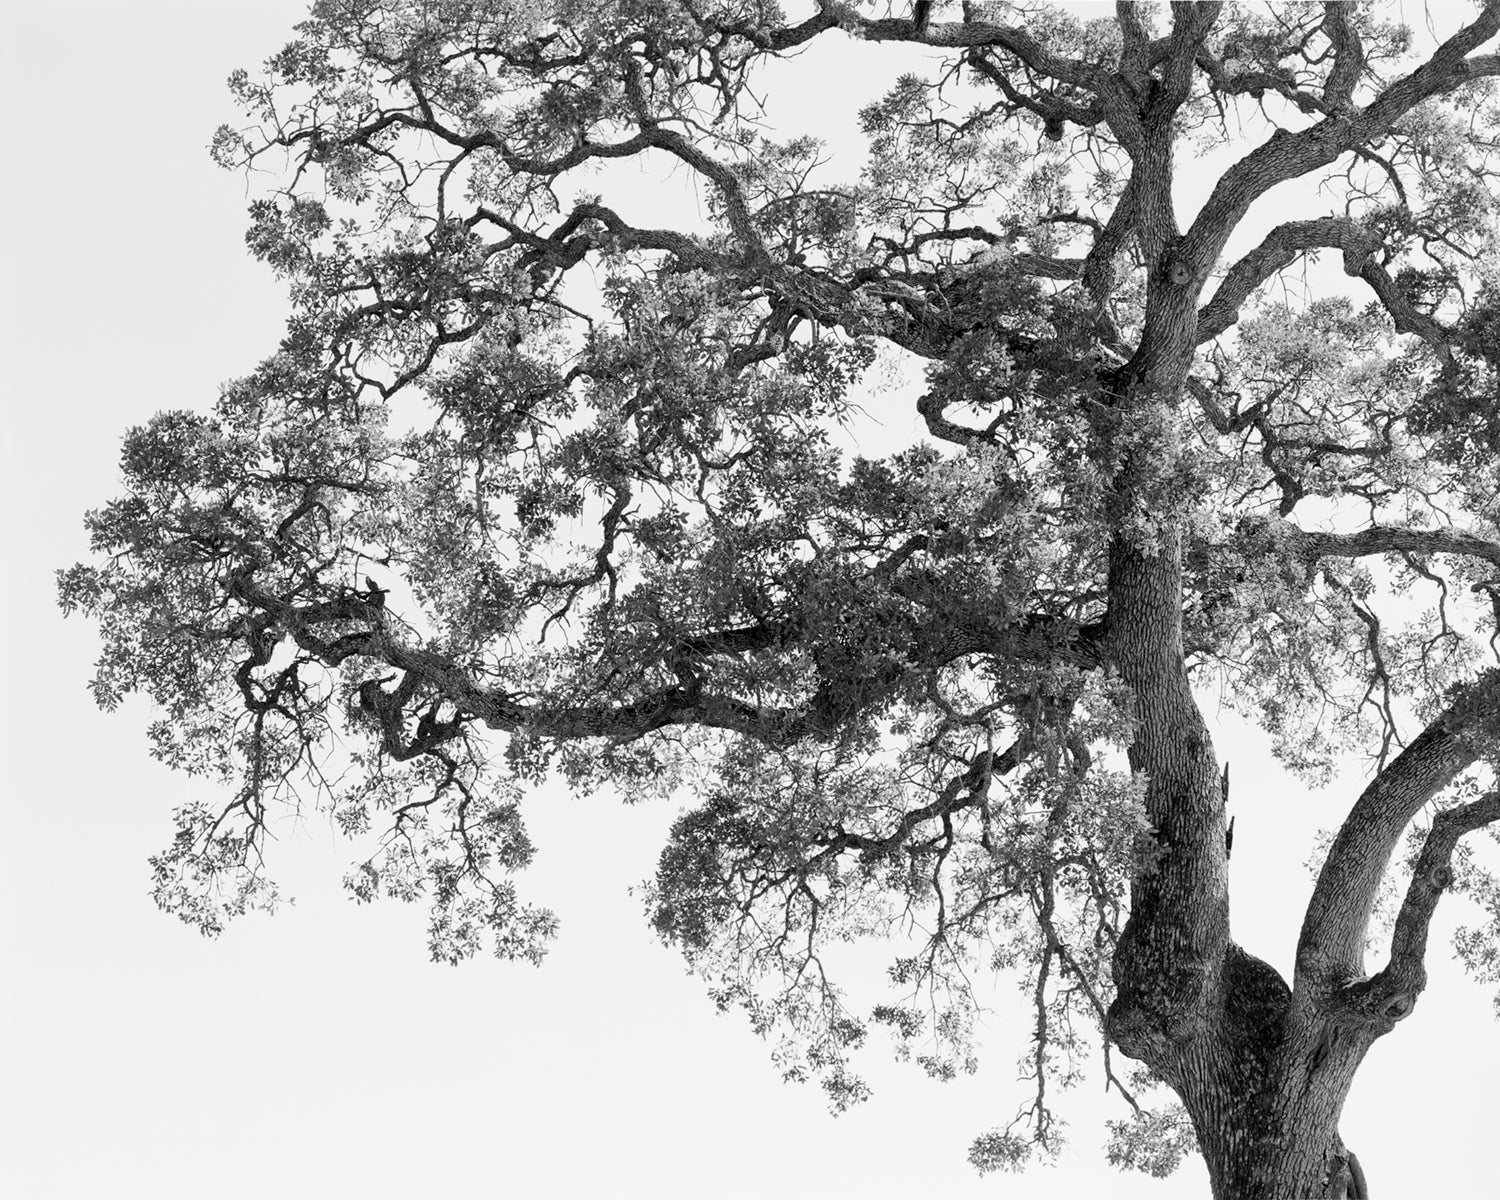 Film study of an oak tree by Mike Basher